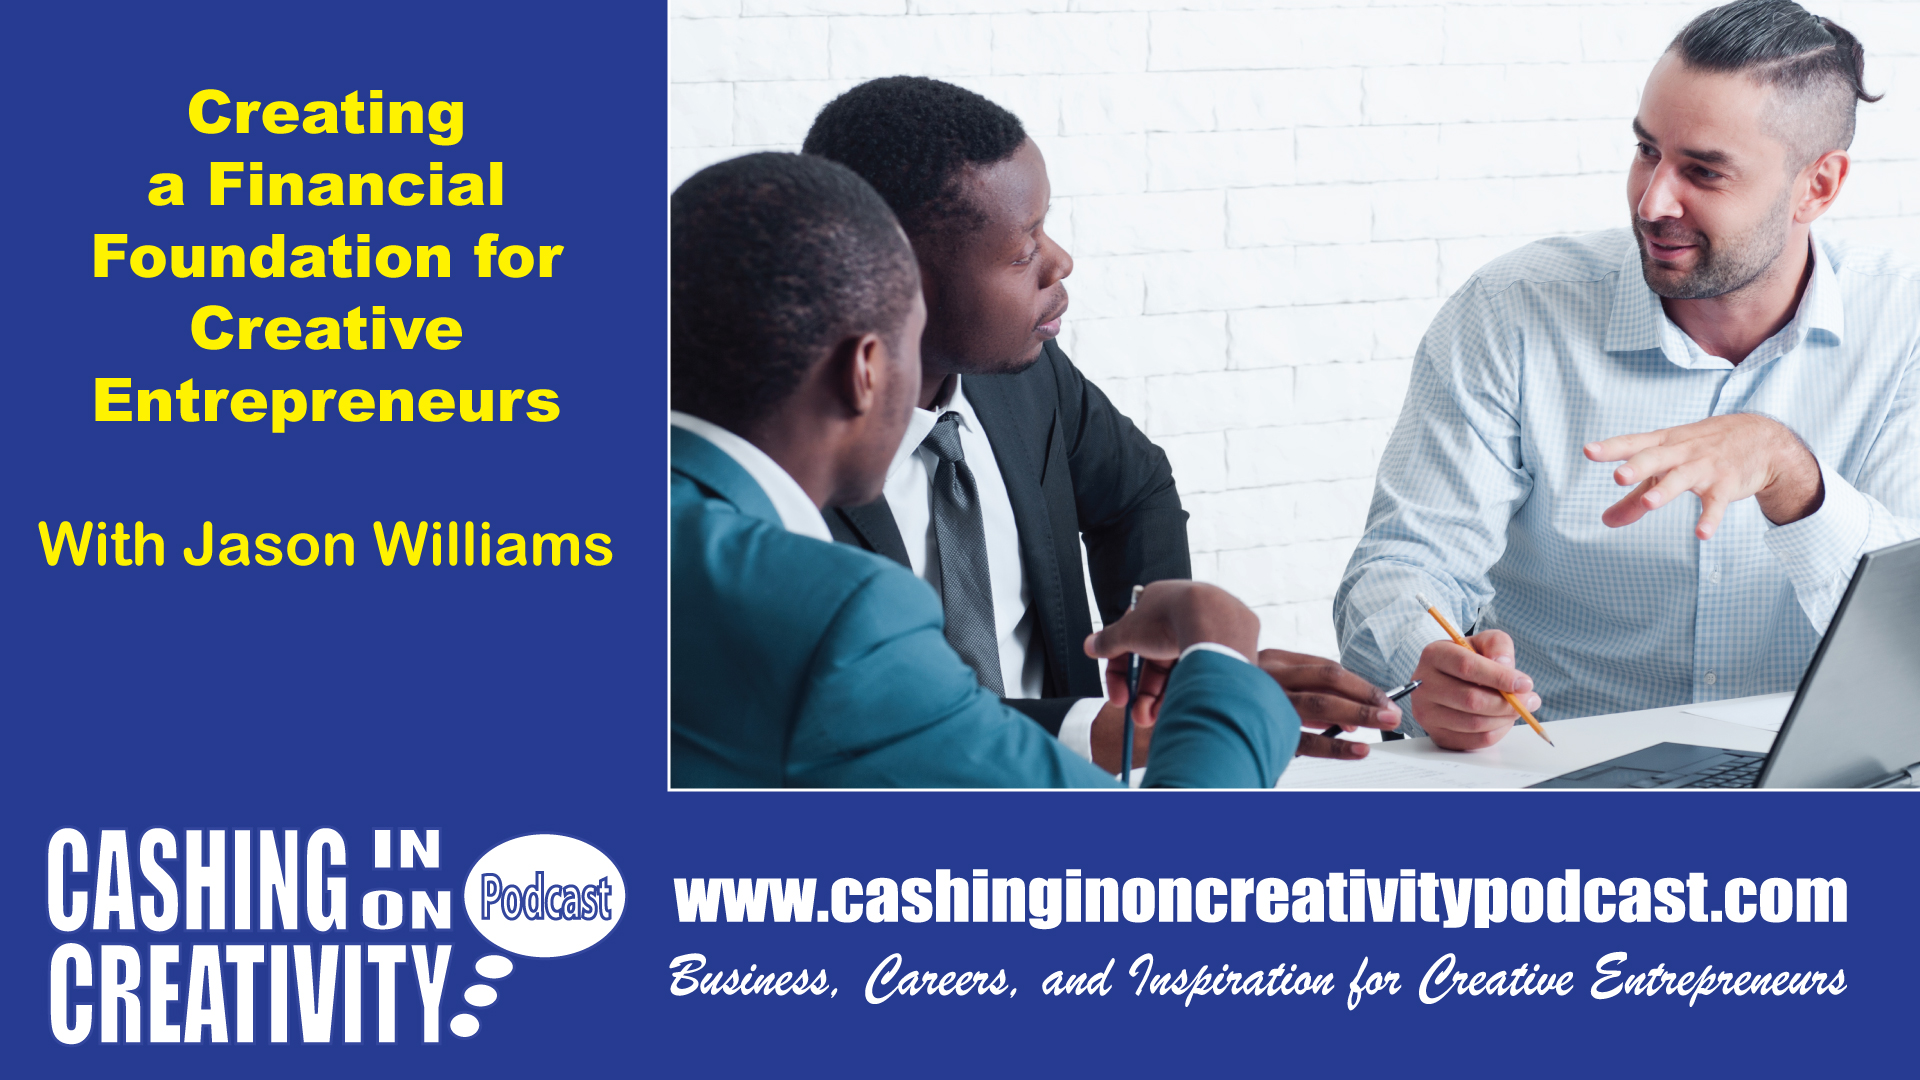 CC220 Building a Financial Foundation for Creative Entrepreneurs